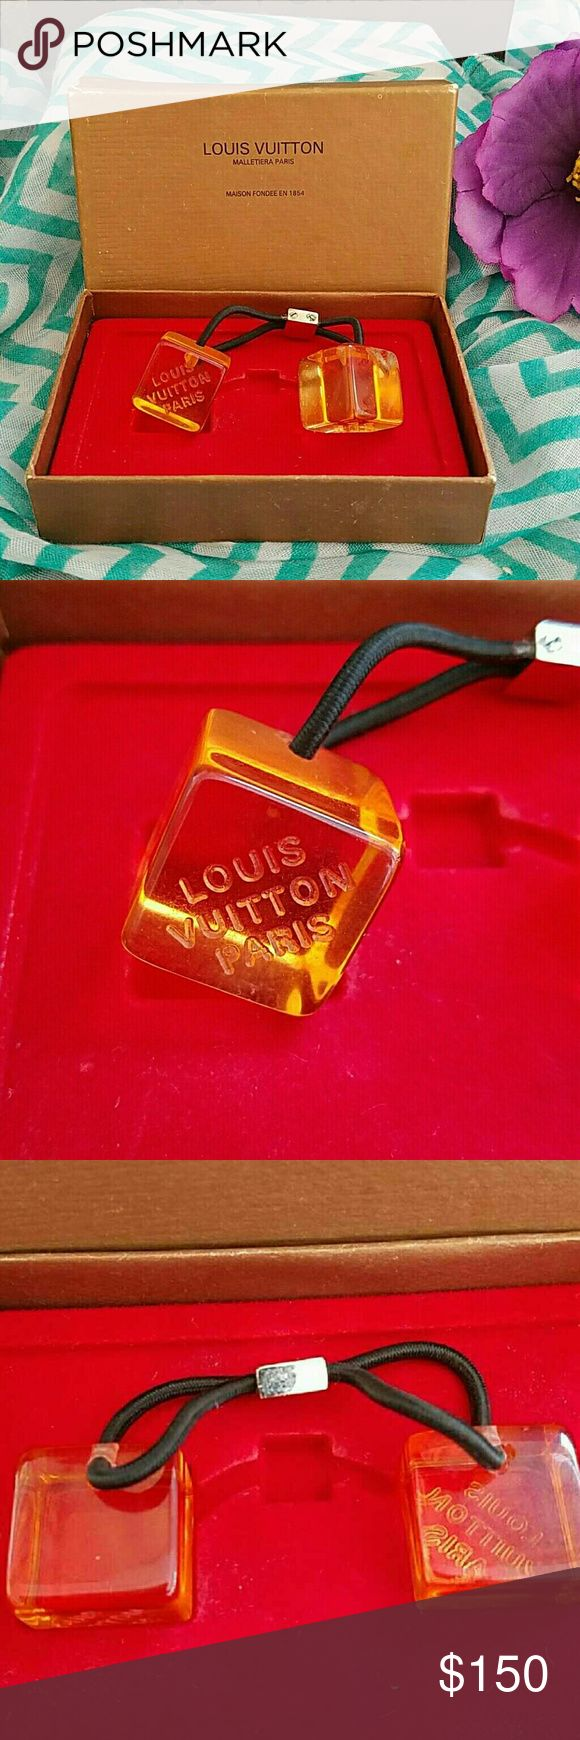 CLEARANCE! RARE! LOUIS VUITTON HAIR CUBES AUTHENTIC VINTAGE LOUIS VUITTON HAIRCUBES AMBER COLOR, PALLADIUM HARDWARE AND SCREWS. ORIGINAL EPI STORAGE BOX INCLUDED BOX HAS SCRATCHES AND SCUFFS, CUBES HAVE SUPERFICIAL SCRATCHES IN GOOD USED VINTAGE CONDITION! FINAL MARKDOWN  75.00 OFF ORIGINAL LISTING PRICE  PRICE FIRM NO OFFERS PLEASE Louis Vuitton Accessories Hair Accessories